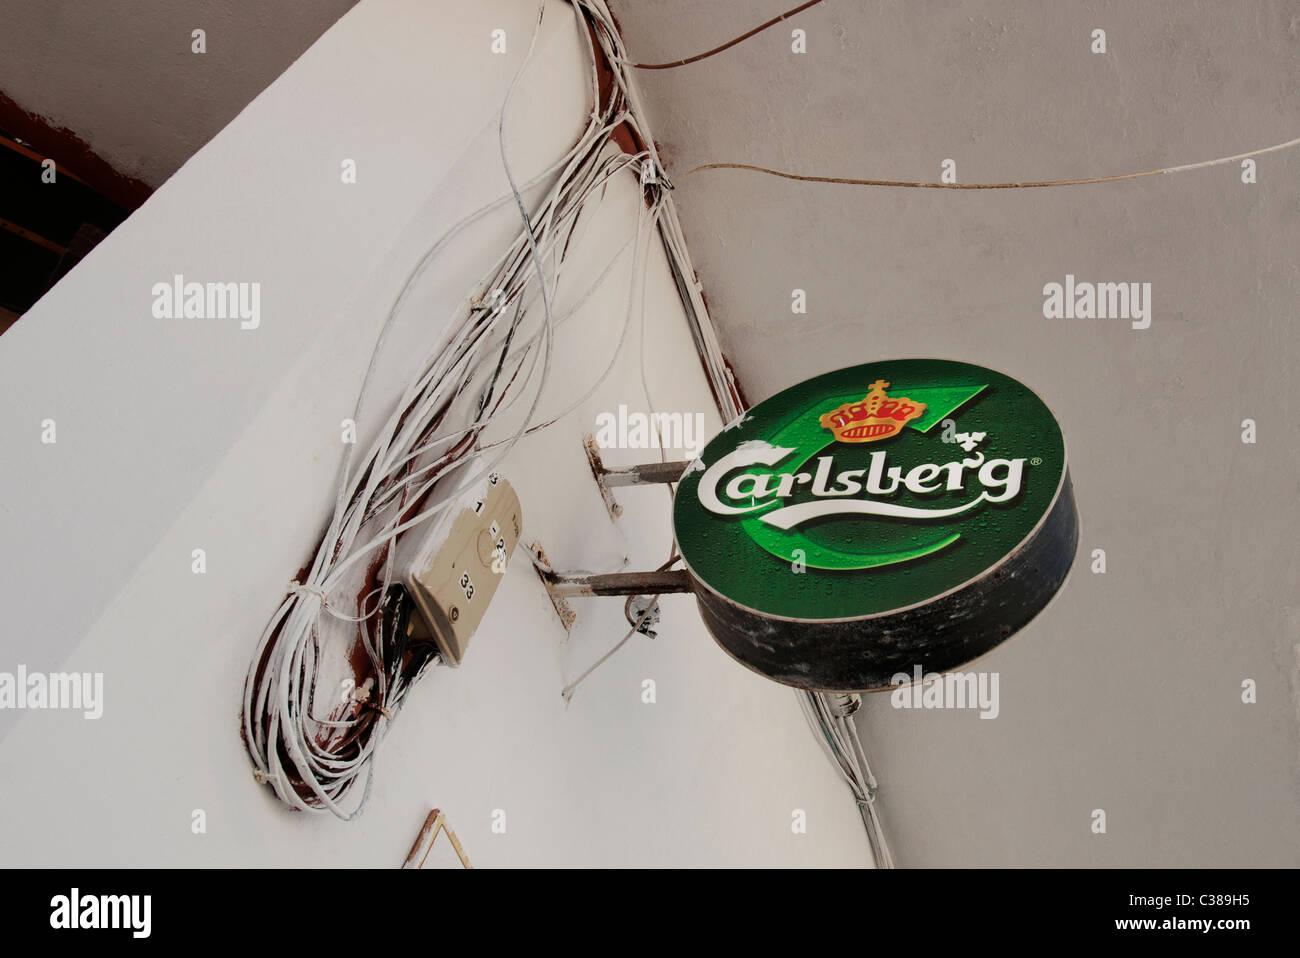 Carlsberg beer sign on the wall outside bar Fuerteventura Canary Islands - Stock Image